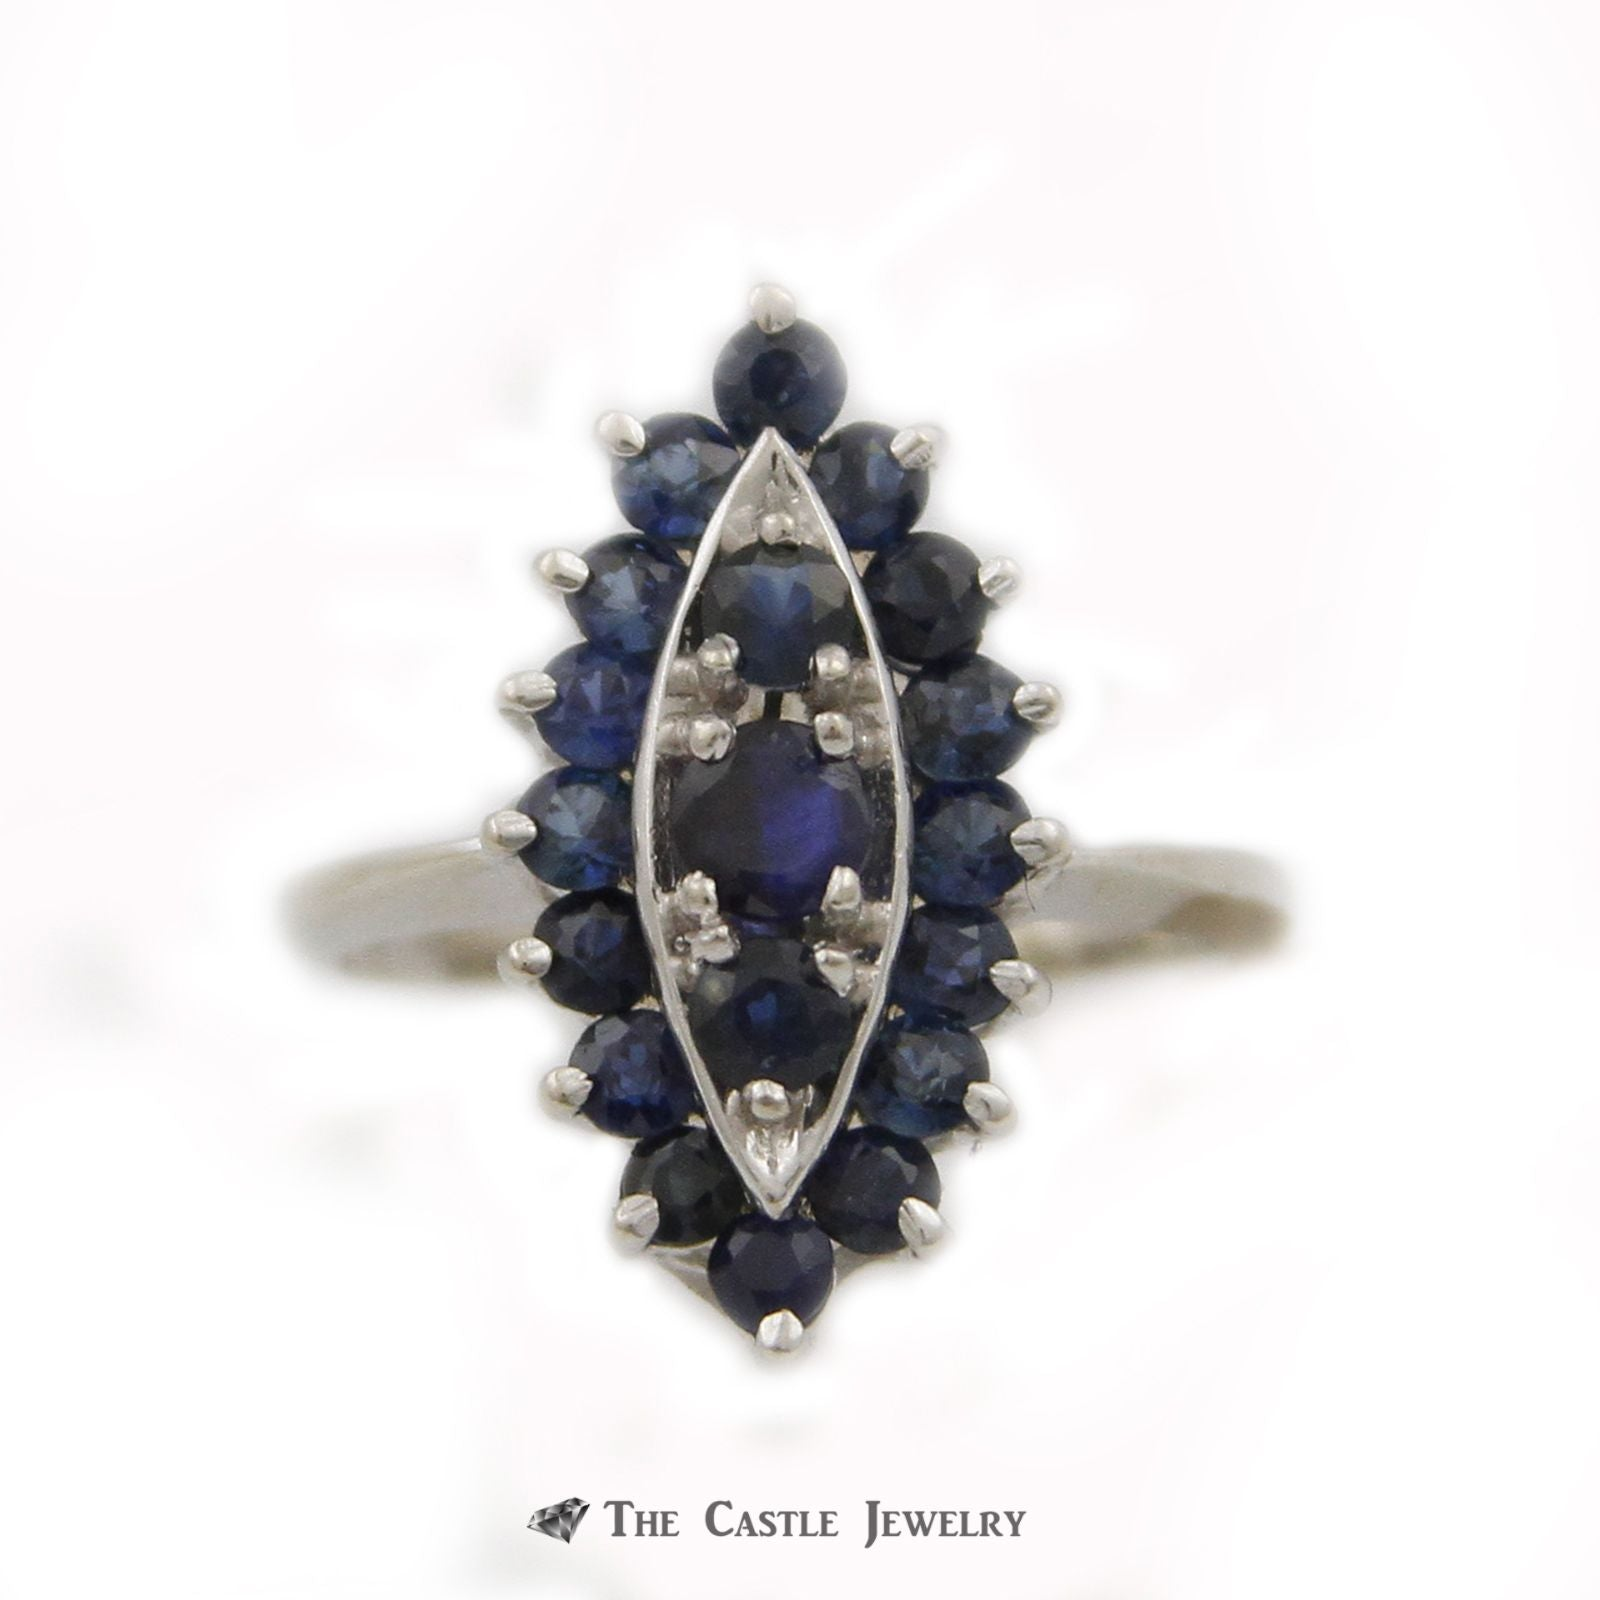 Marquise Shaped Cluster Ring w/ Round Blue Sapphire Gemstones Crafted in 14k White Gold